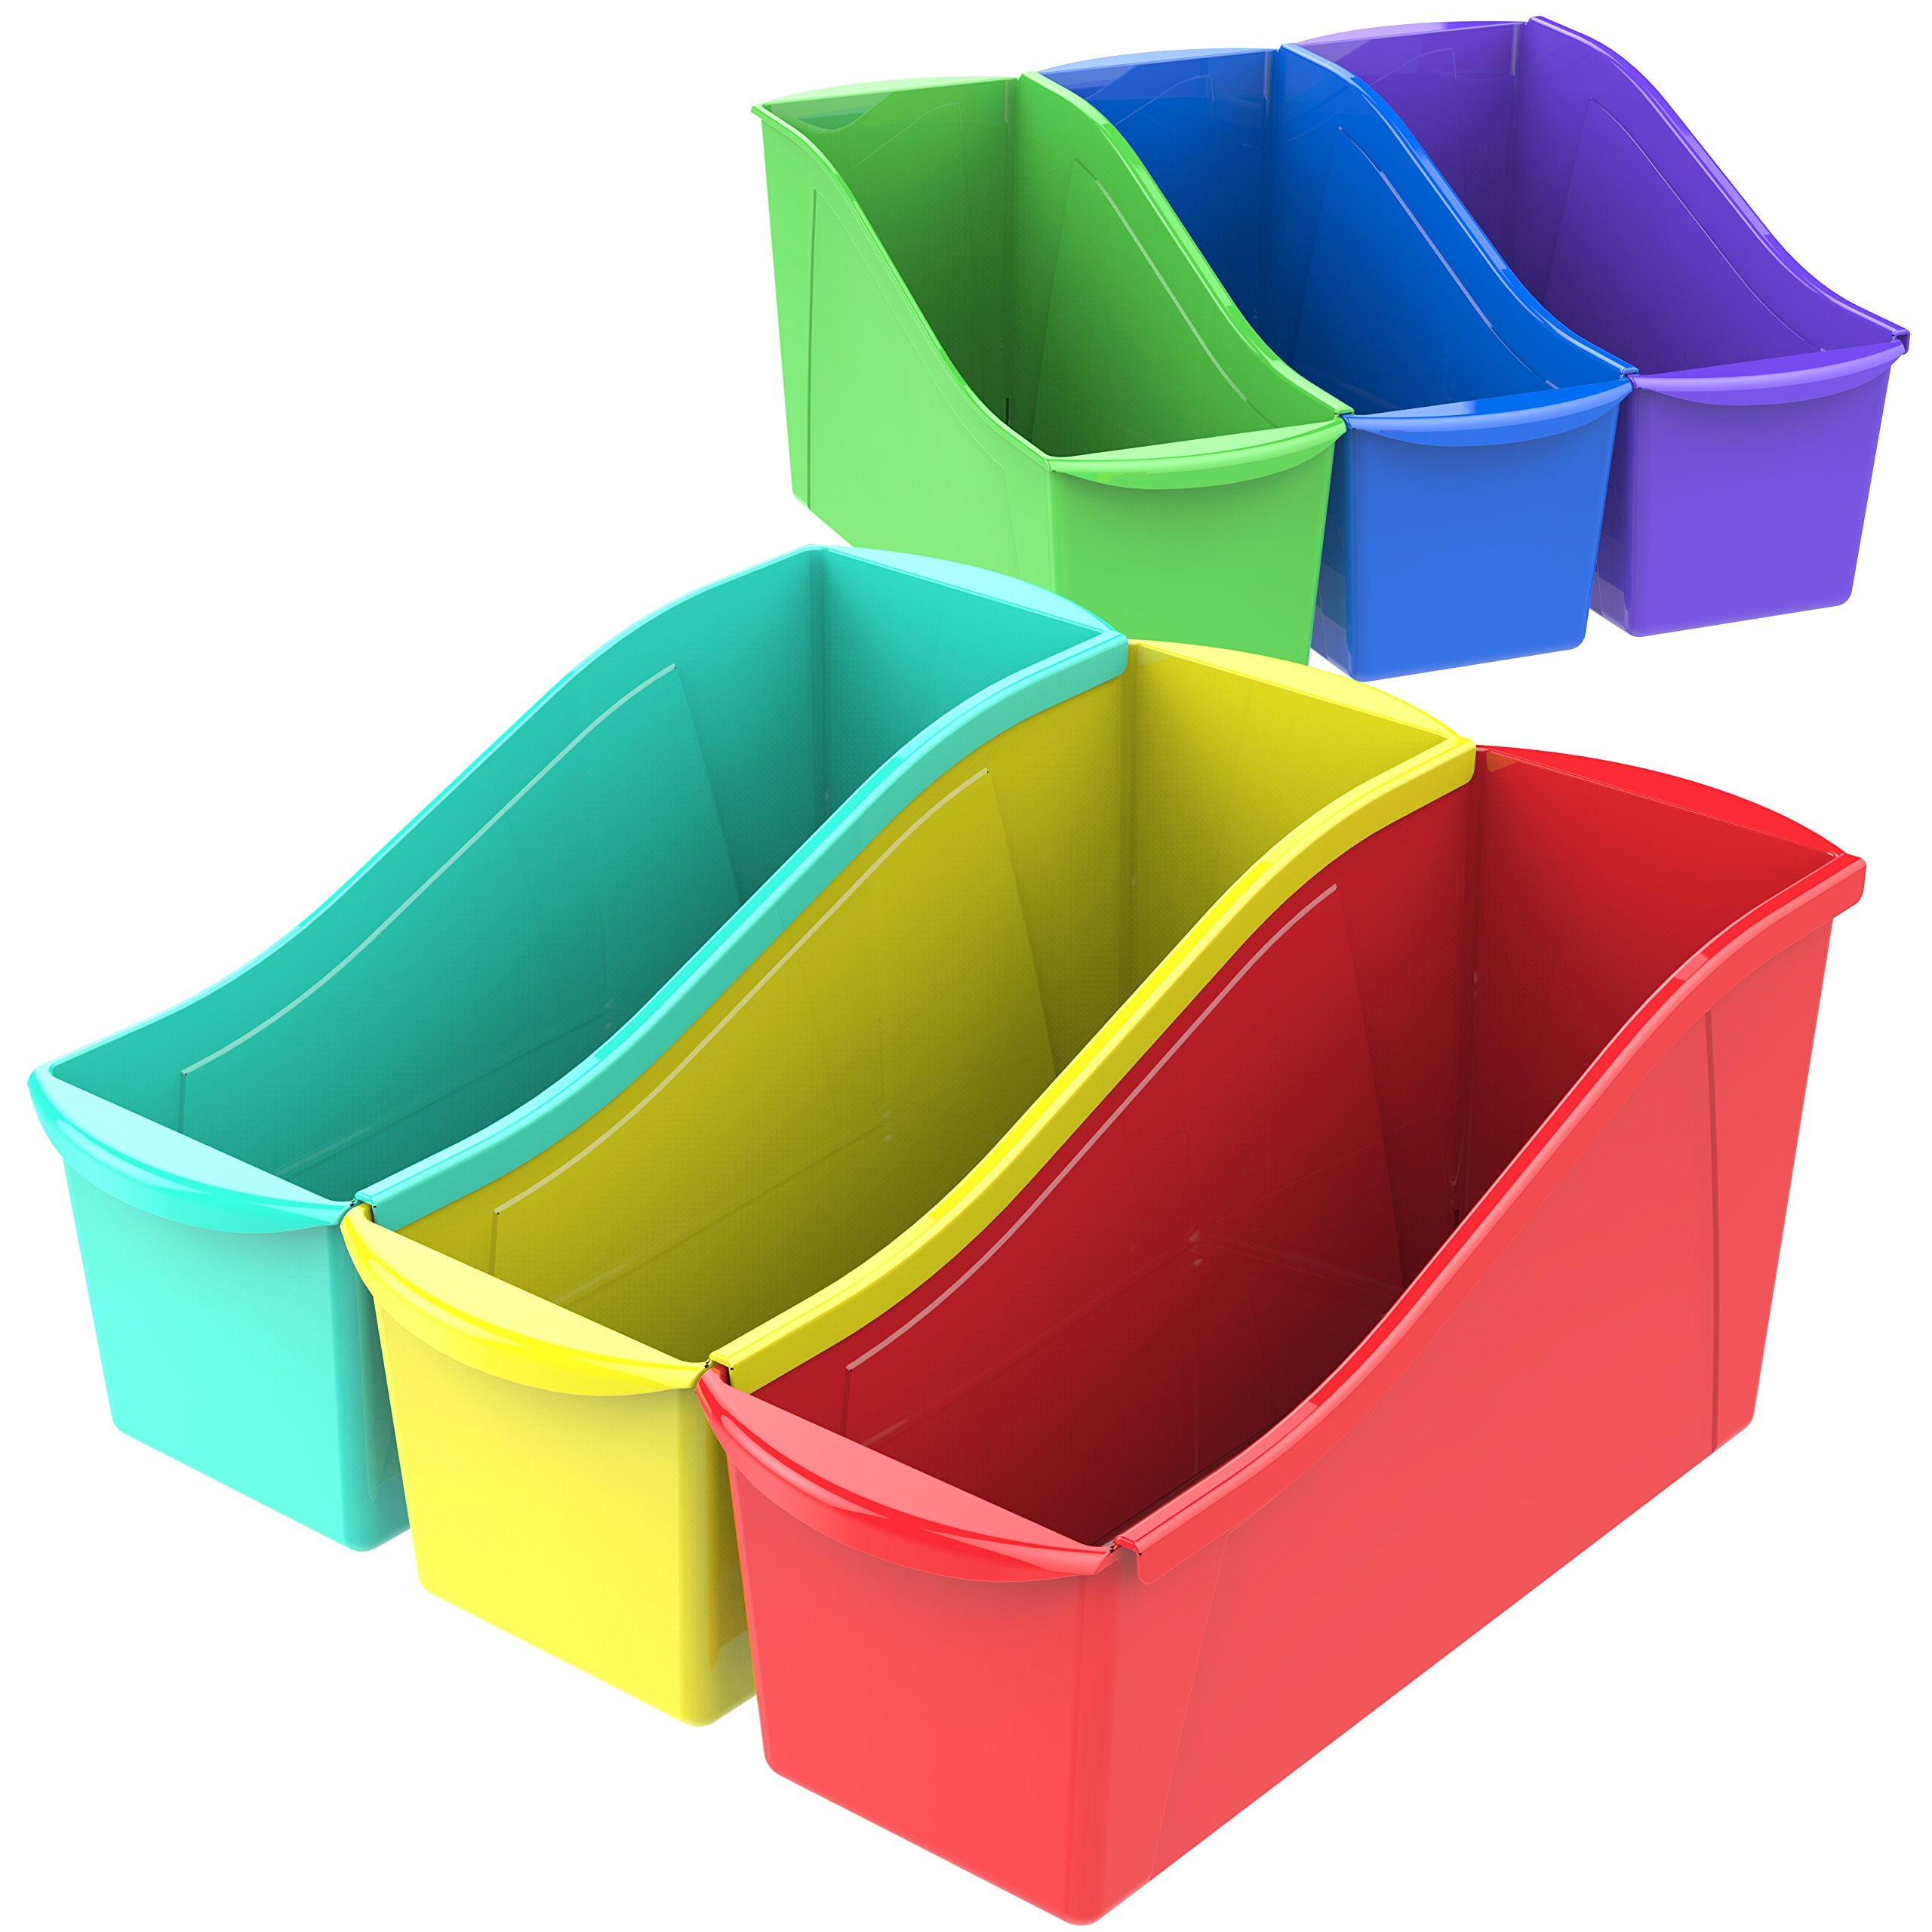 Storex Book Bin with Label Holder, 14.3 x 5.3 x 7 Inches, Assorted Colors, Case of 6 (70110U06C)